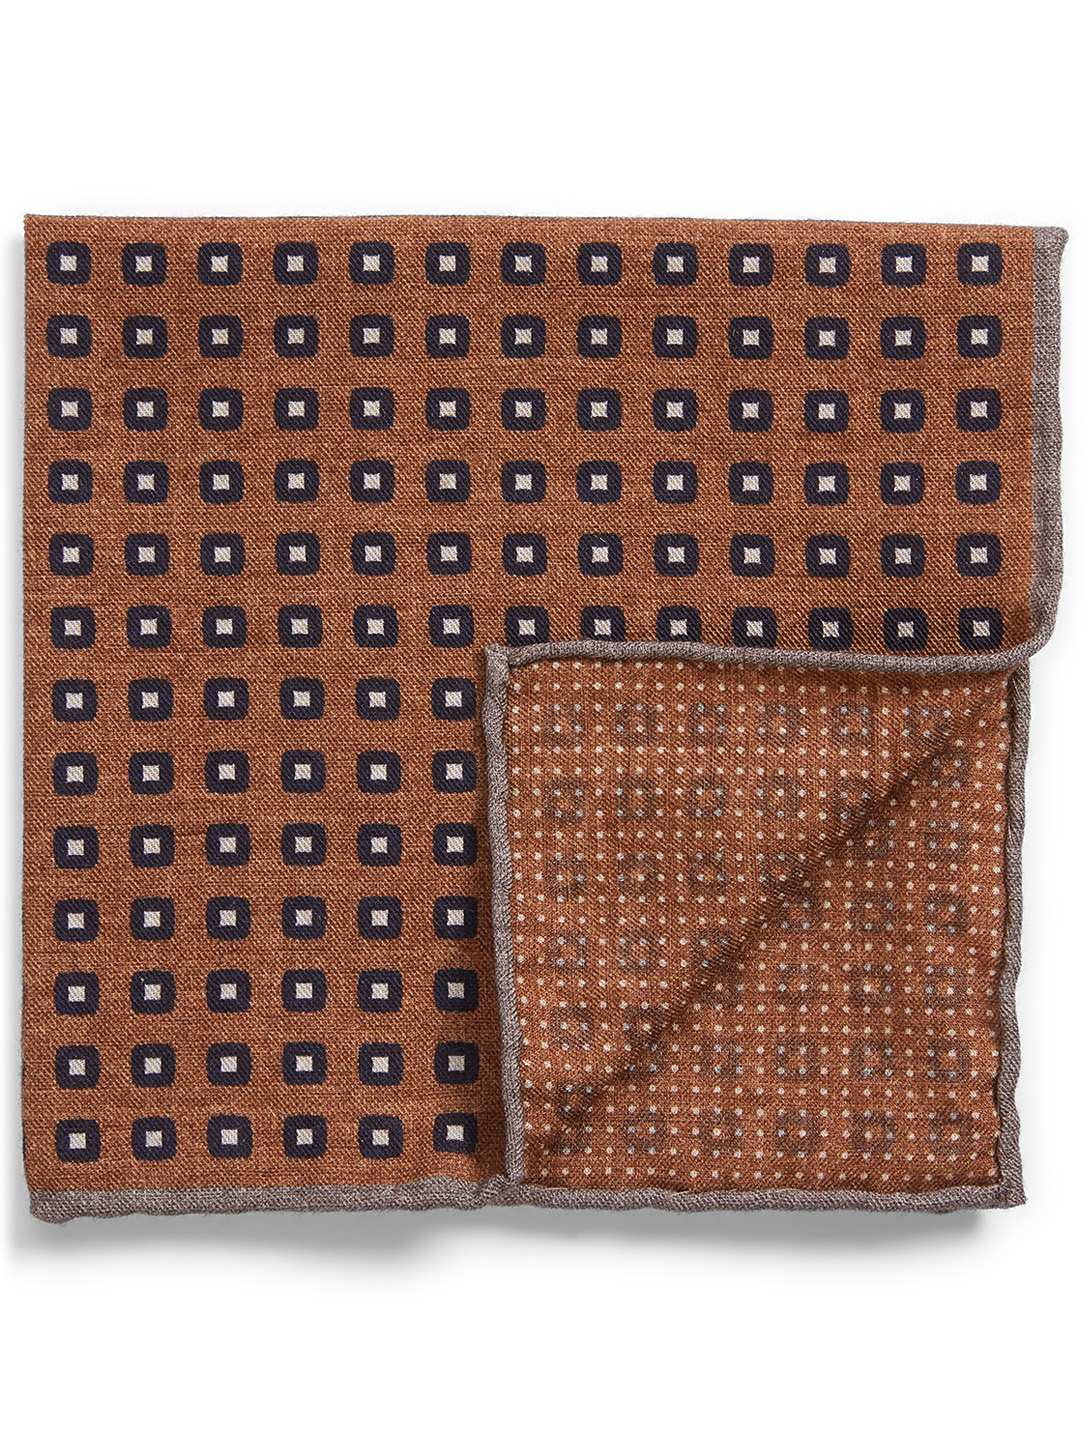 ELEVENTY Wool And Cotton Pocket Square In Geometric Print Men's Beige